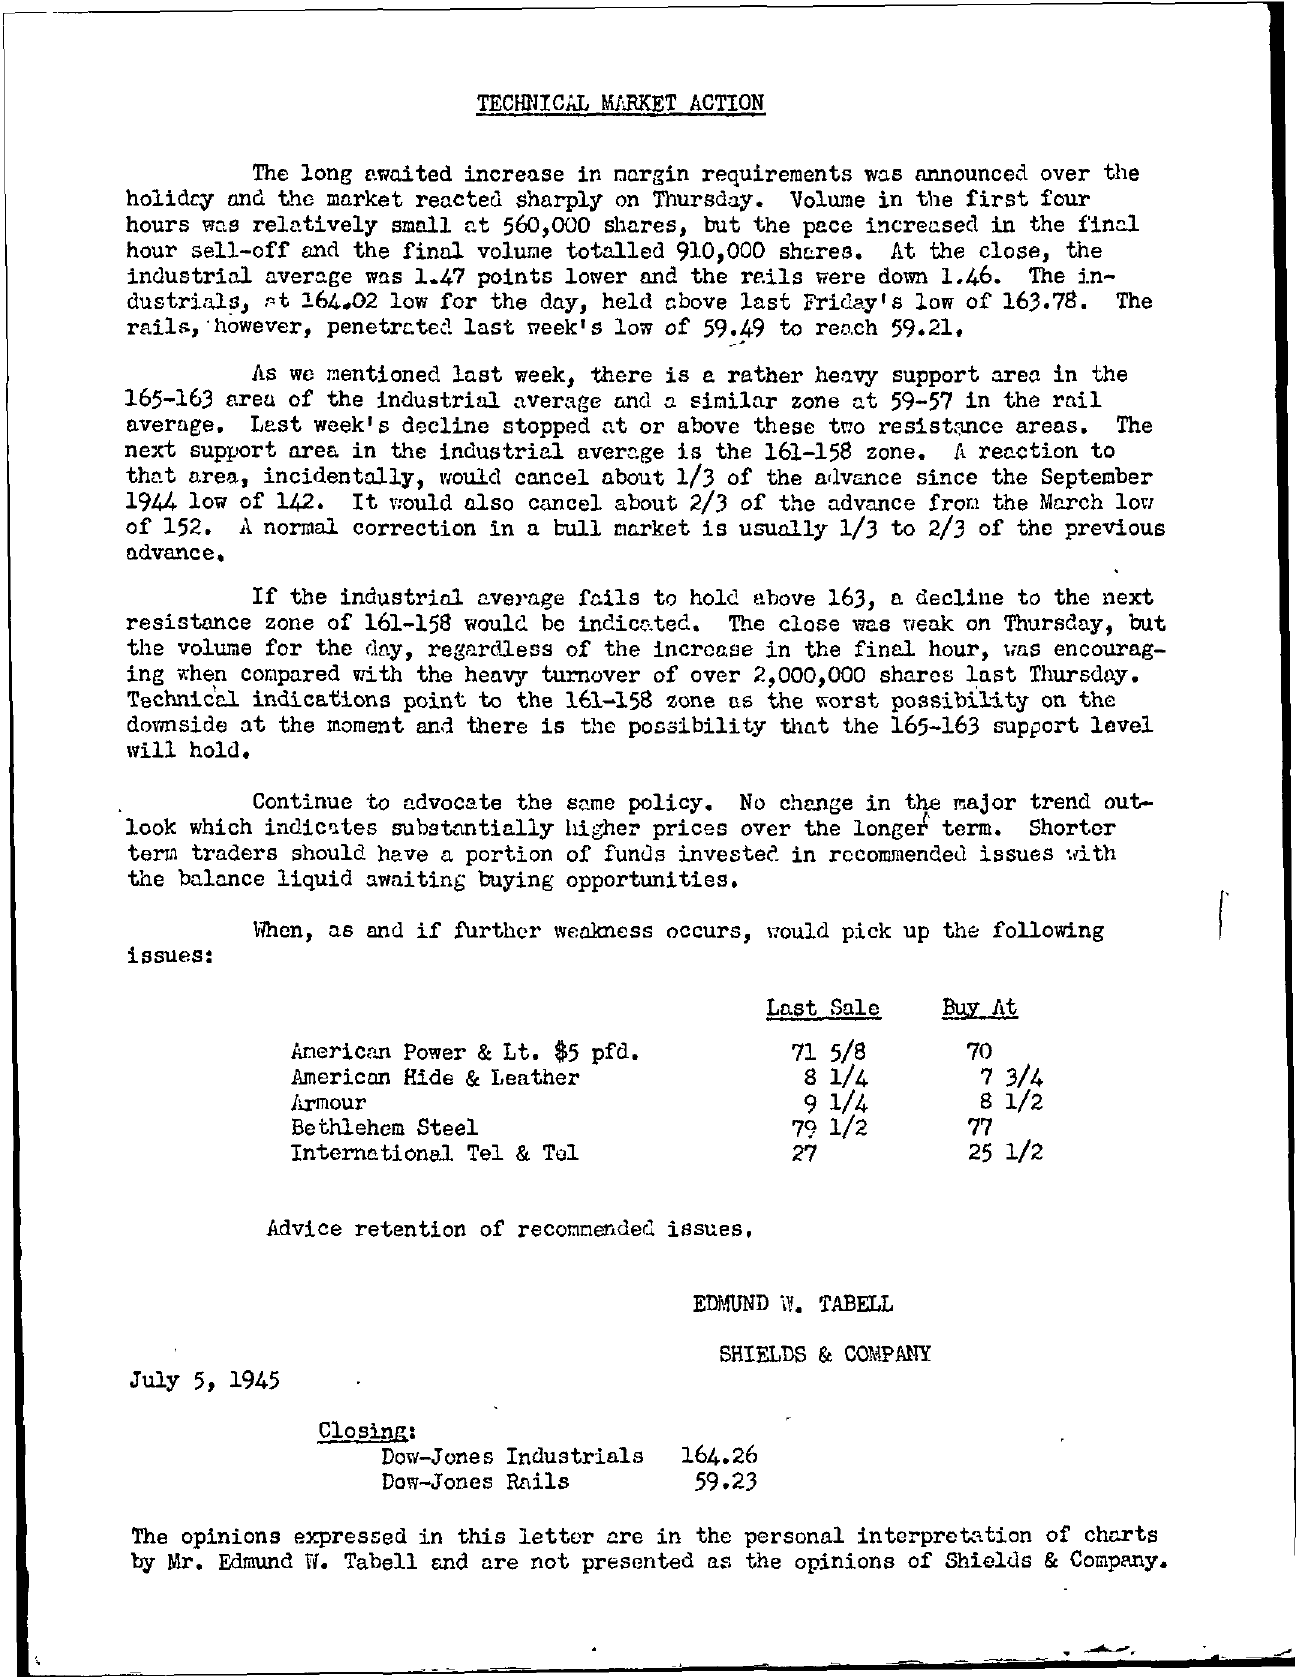 Tabell's Market Letter - July 05, 1945